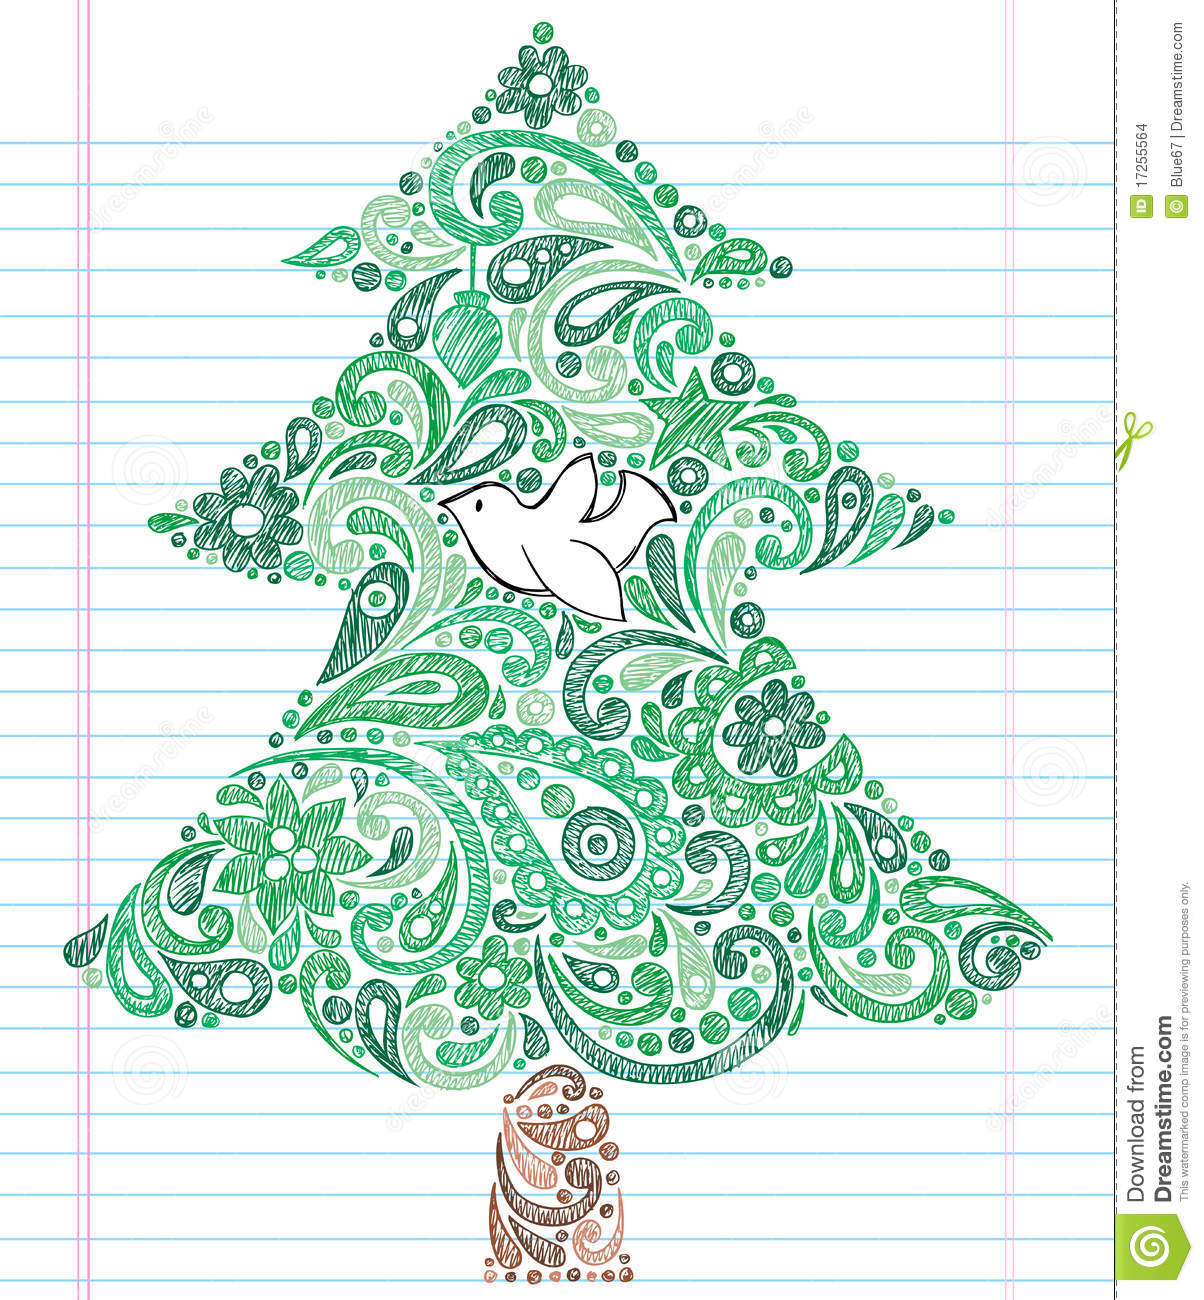 Hand-Drawn Sketchy Doodle Henna Paisley Christmas Tree with Dove ...